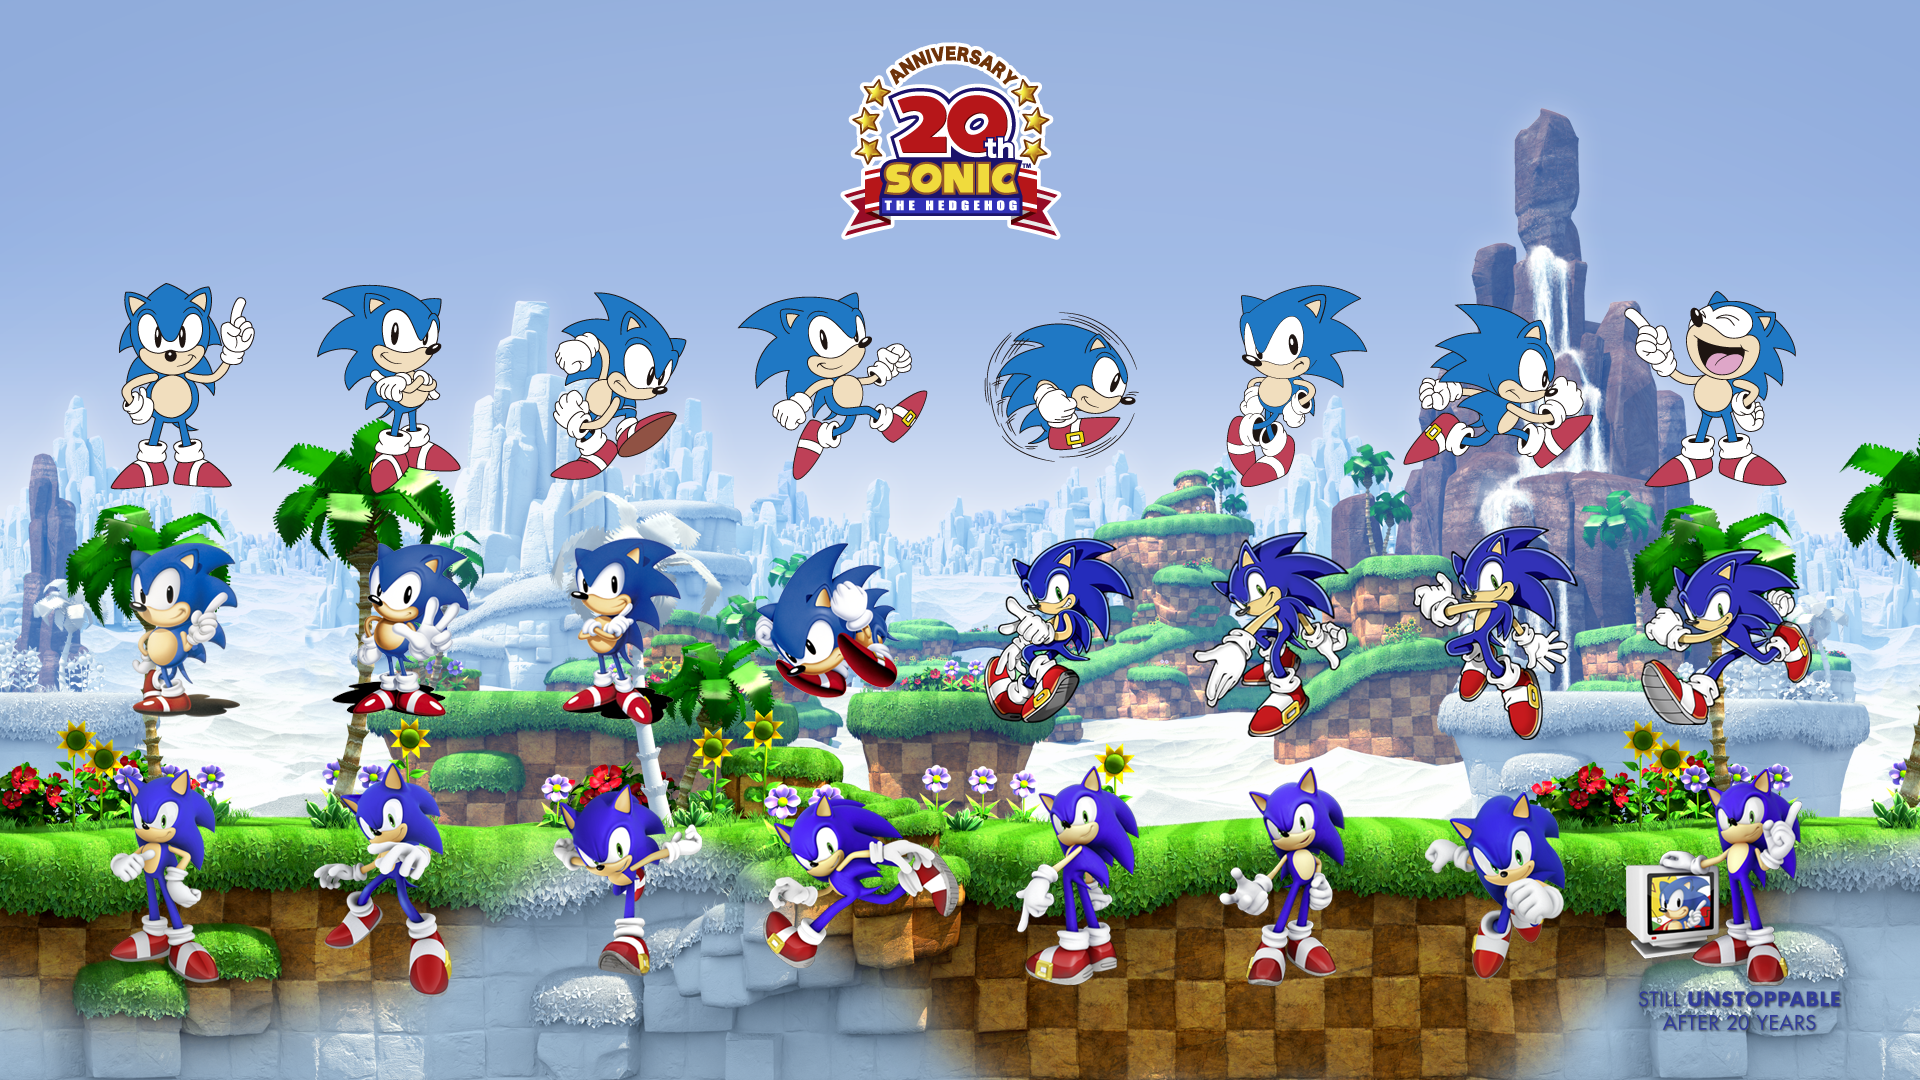 New Sonic Generations Wallpaper Released – Sonic Retro